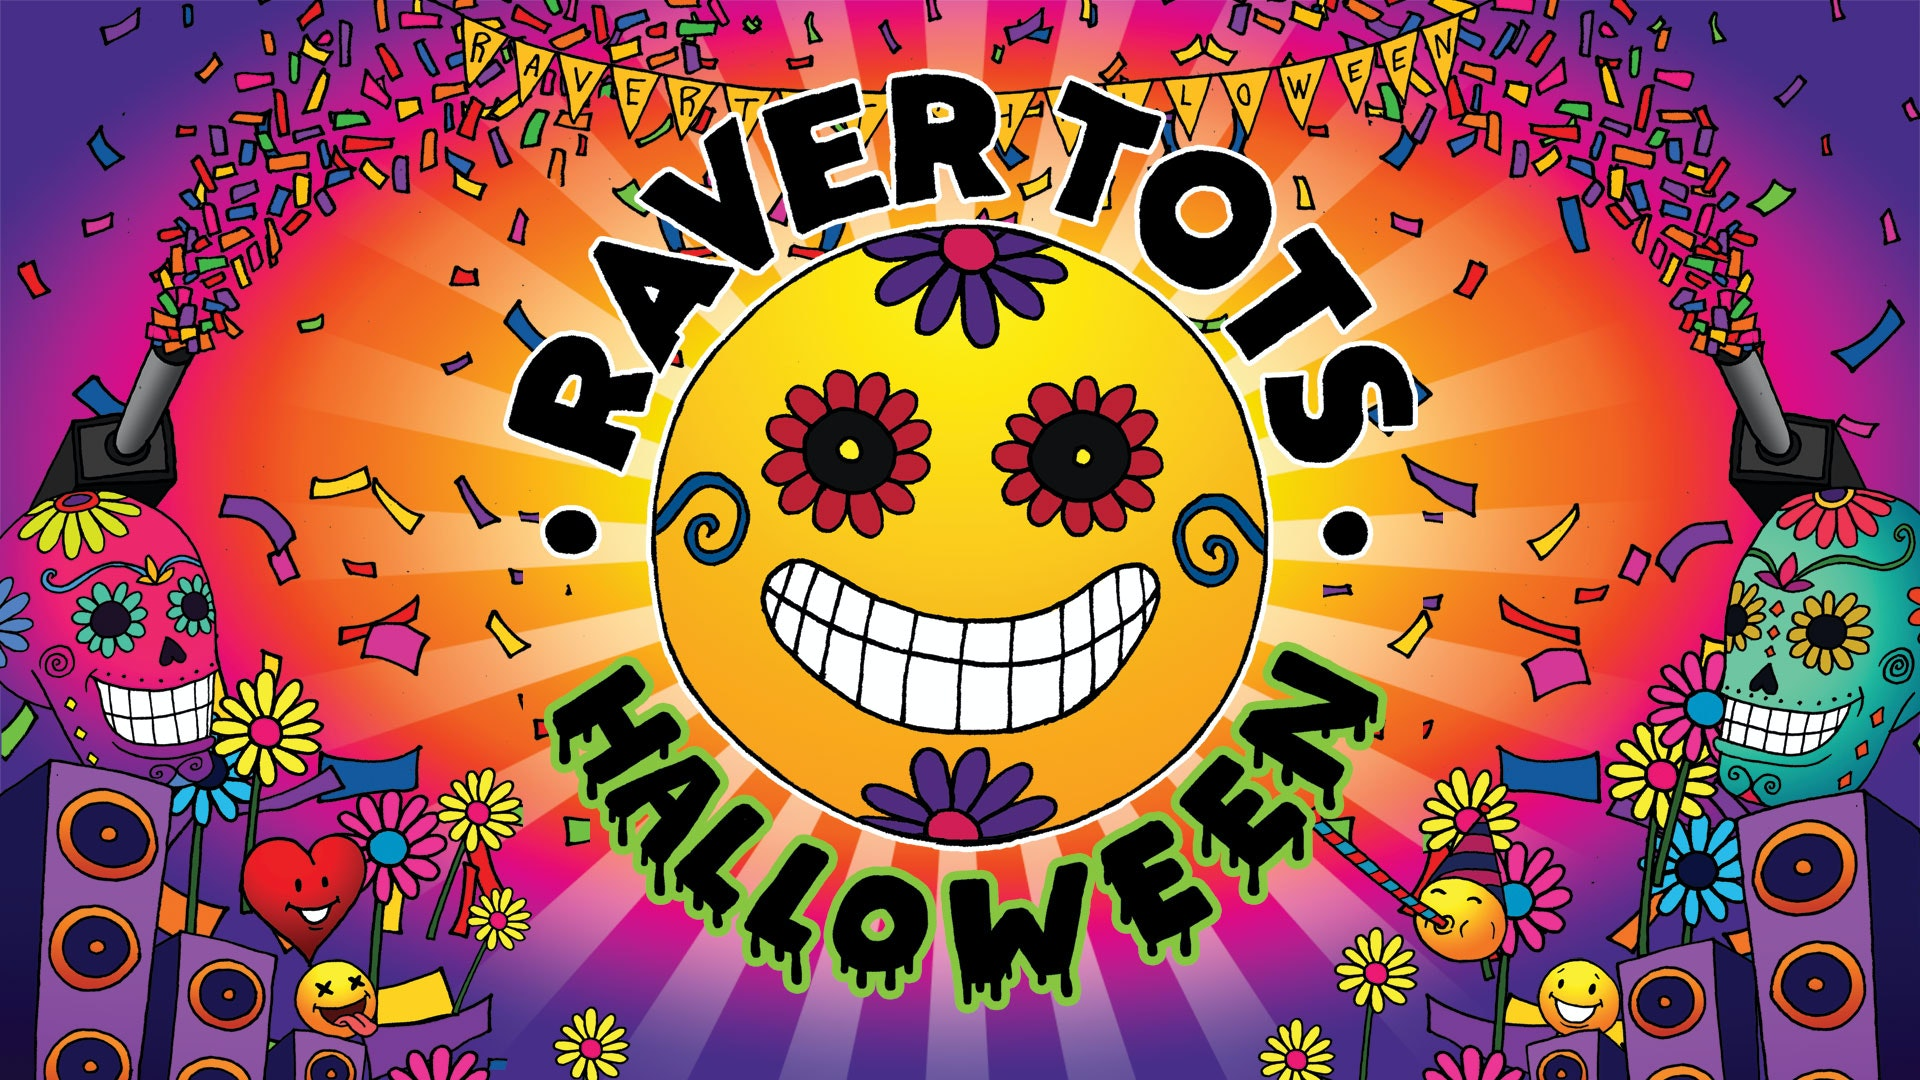 Raver Tots Halloween at HMV Empire Coventry with Artful Dodger & More